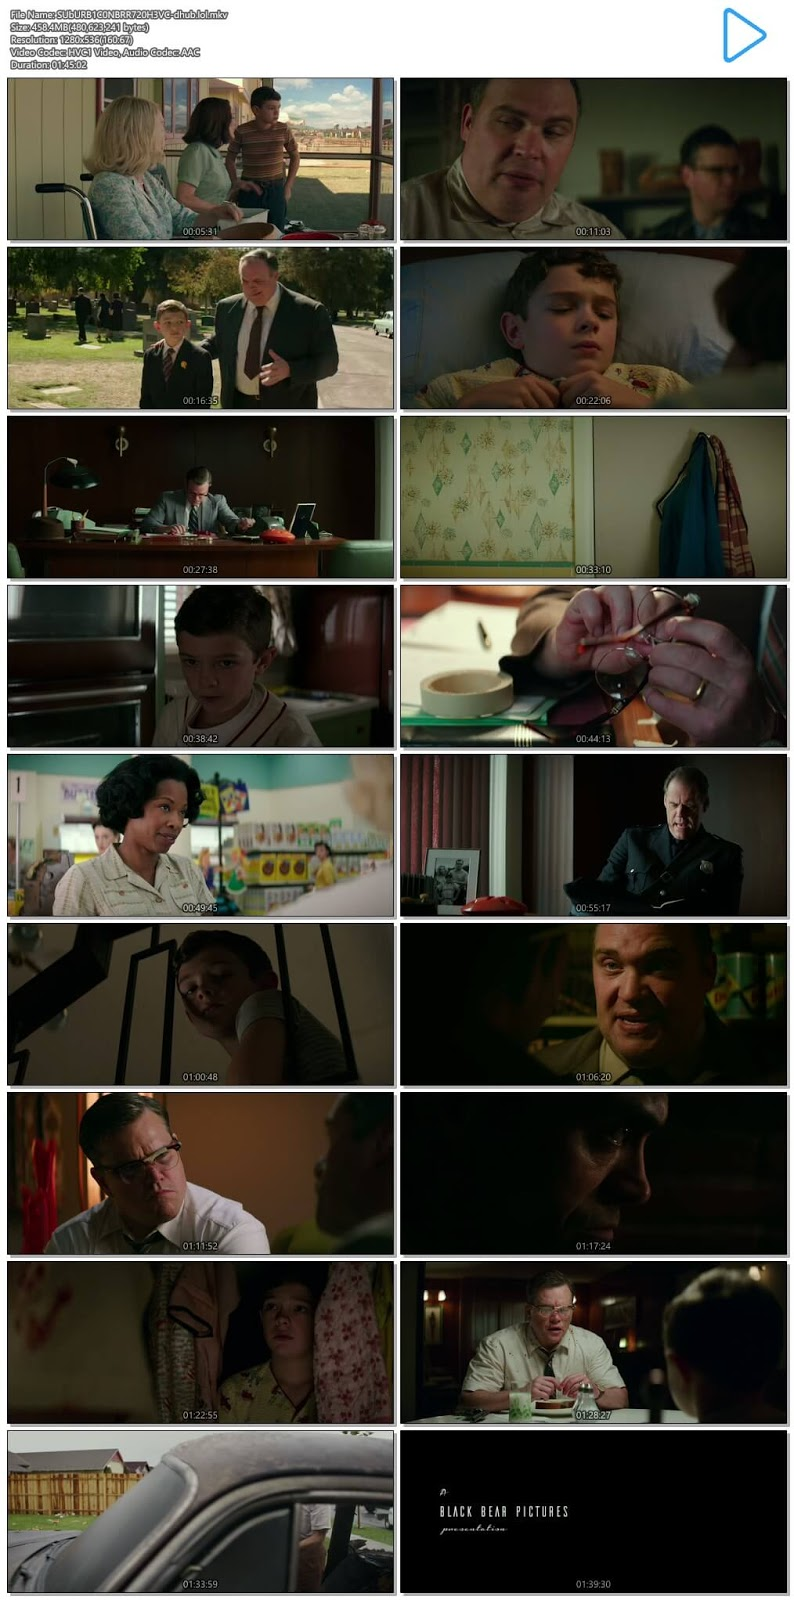 Suburbicon 2017 English 720p HEVC BRRip ESubs